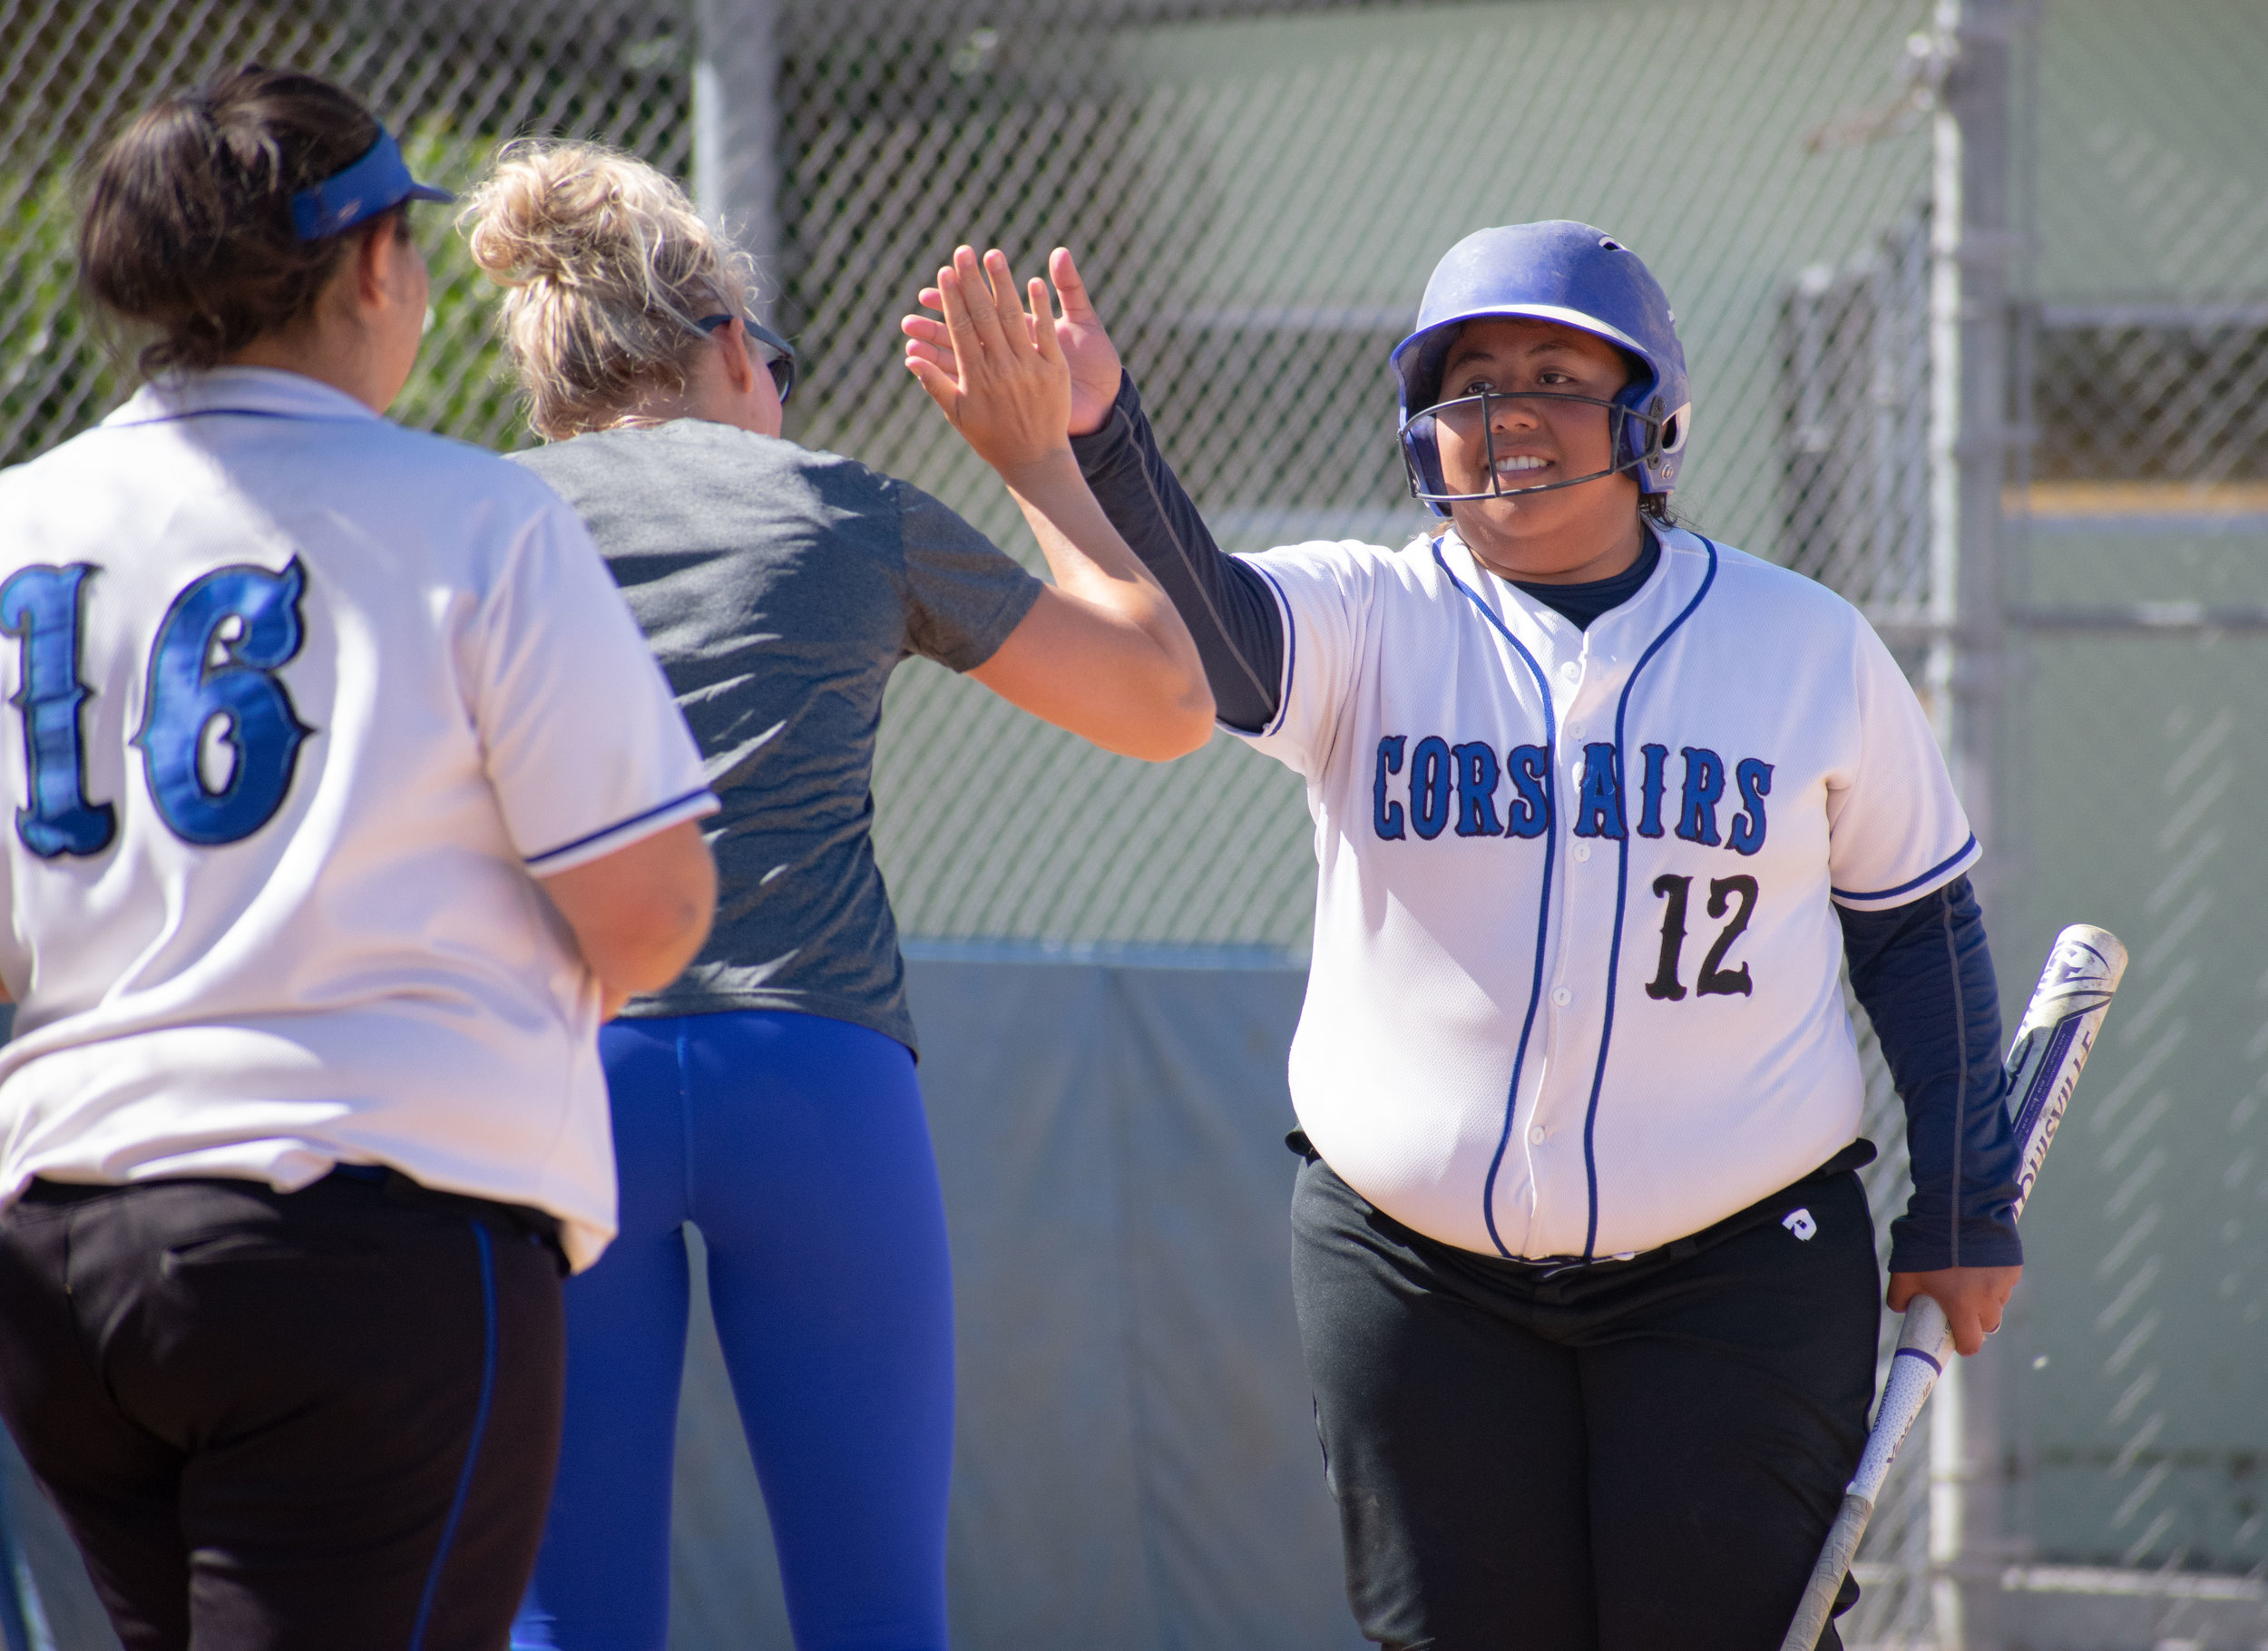 Santa Monica College Corsair Ashley Sasso (#12), a sophomore playing her last game sees assistant coach Sam Sheeley during the final game of the season against the Santa Barbara Vaqueros on Friday, April 20, 2018 at the John Adams Middle School Field in Santa Monica, California. The game was a 7-1 loss for the Corsairs, ending the season with an 8-21 record. (Ethan Lauren/Corsair Photo)